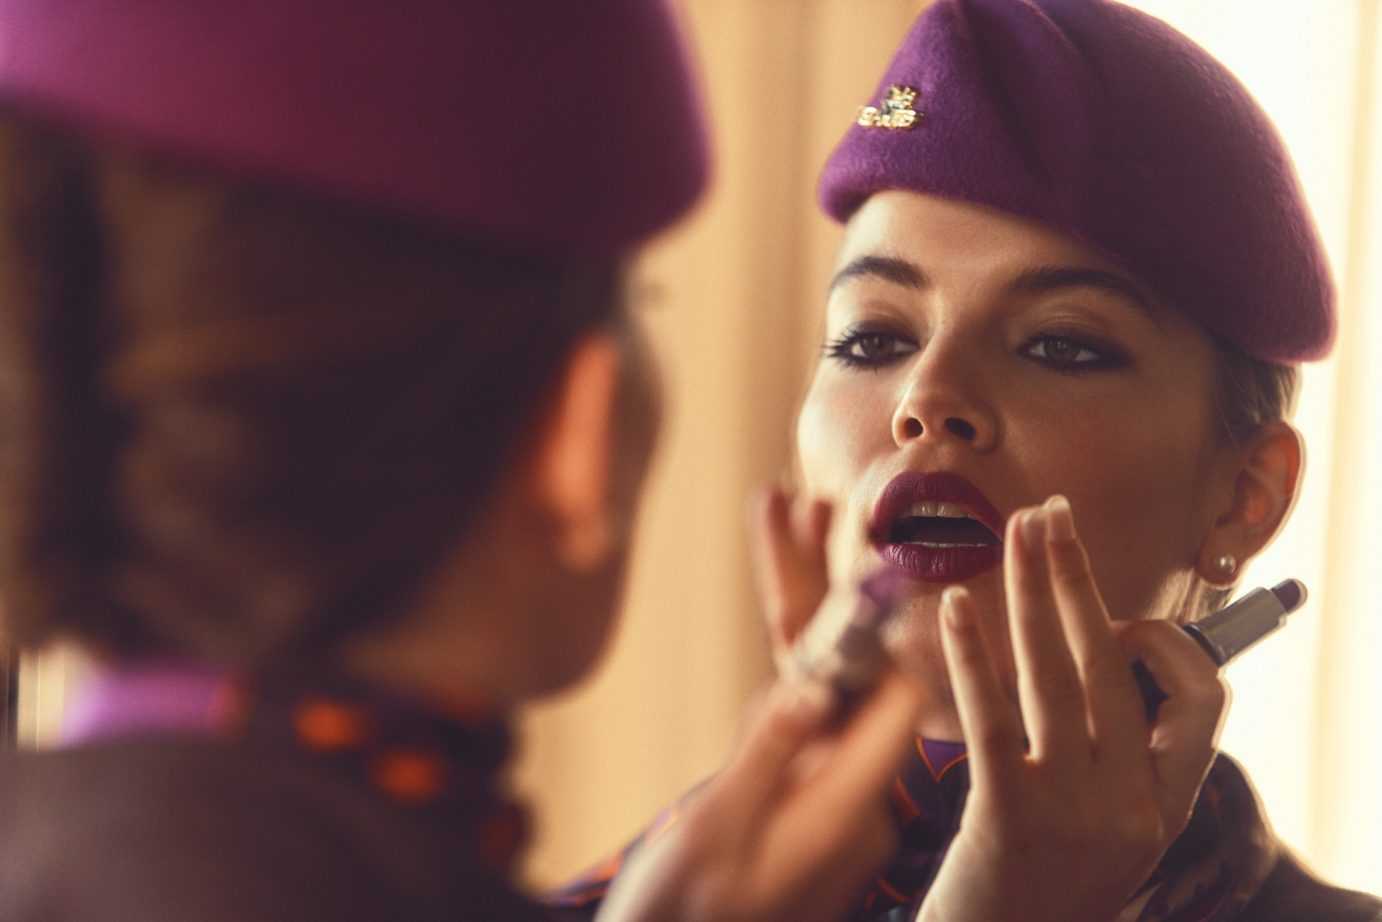 Etihad-girl-with-lipstick